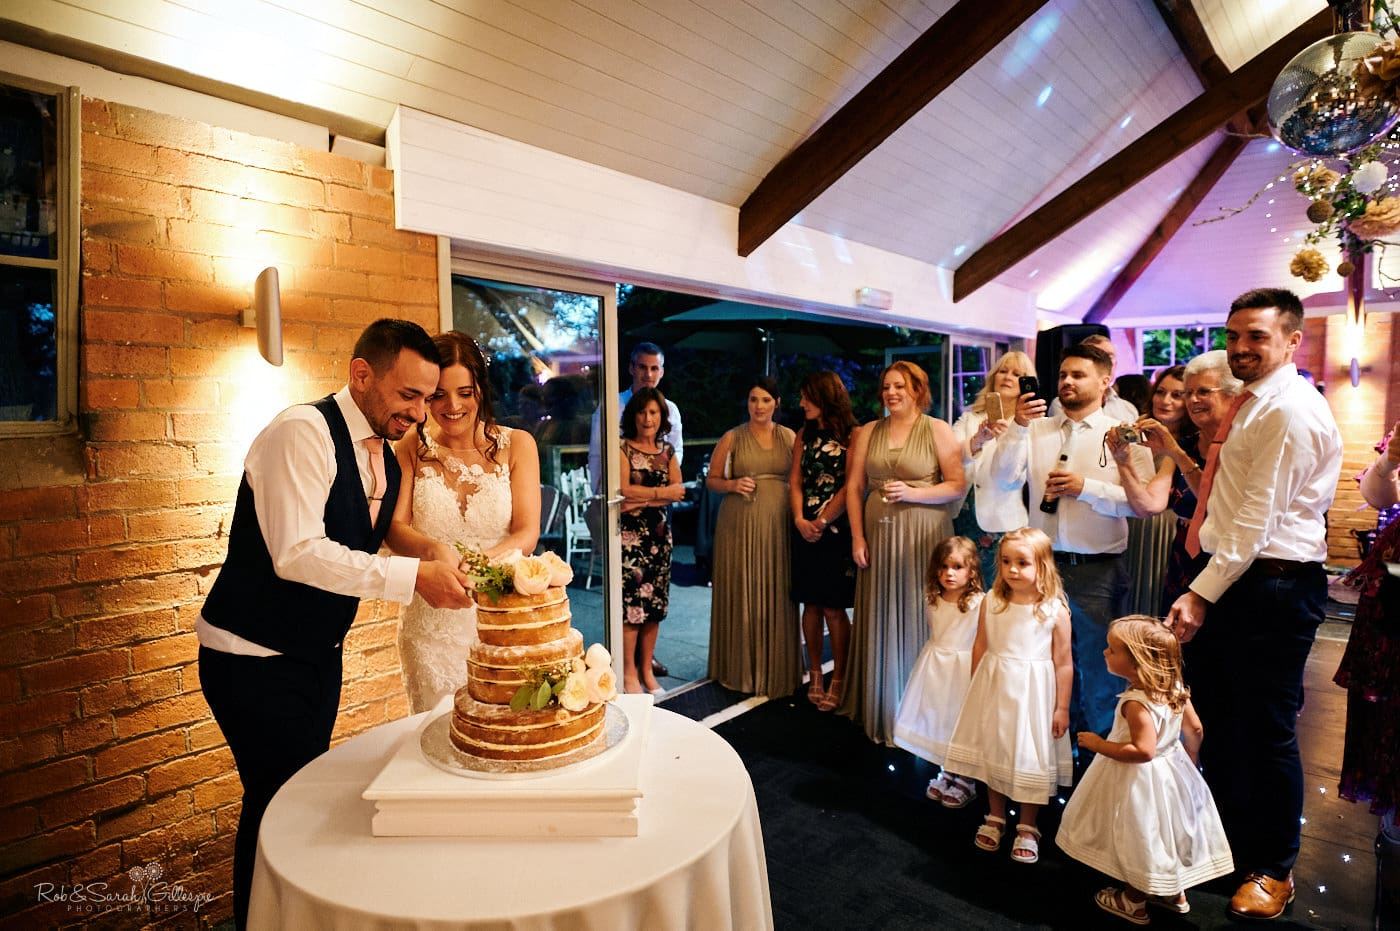 Bride and groom cut wedding cake as guests watch at Gorcott Hall